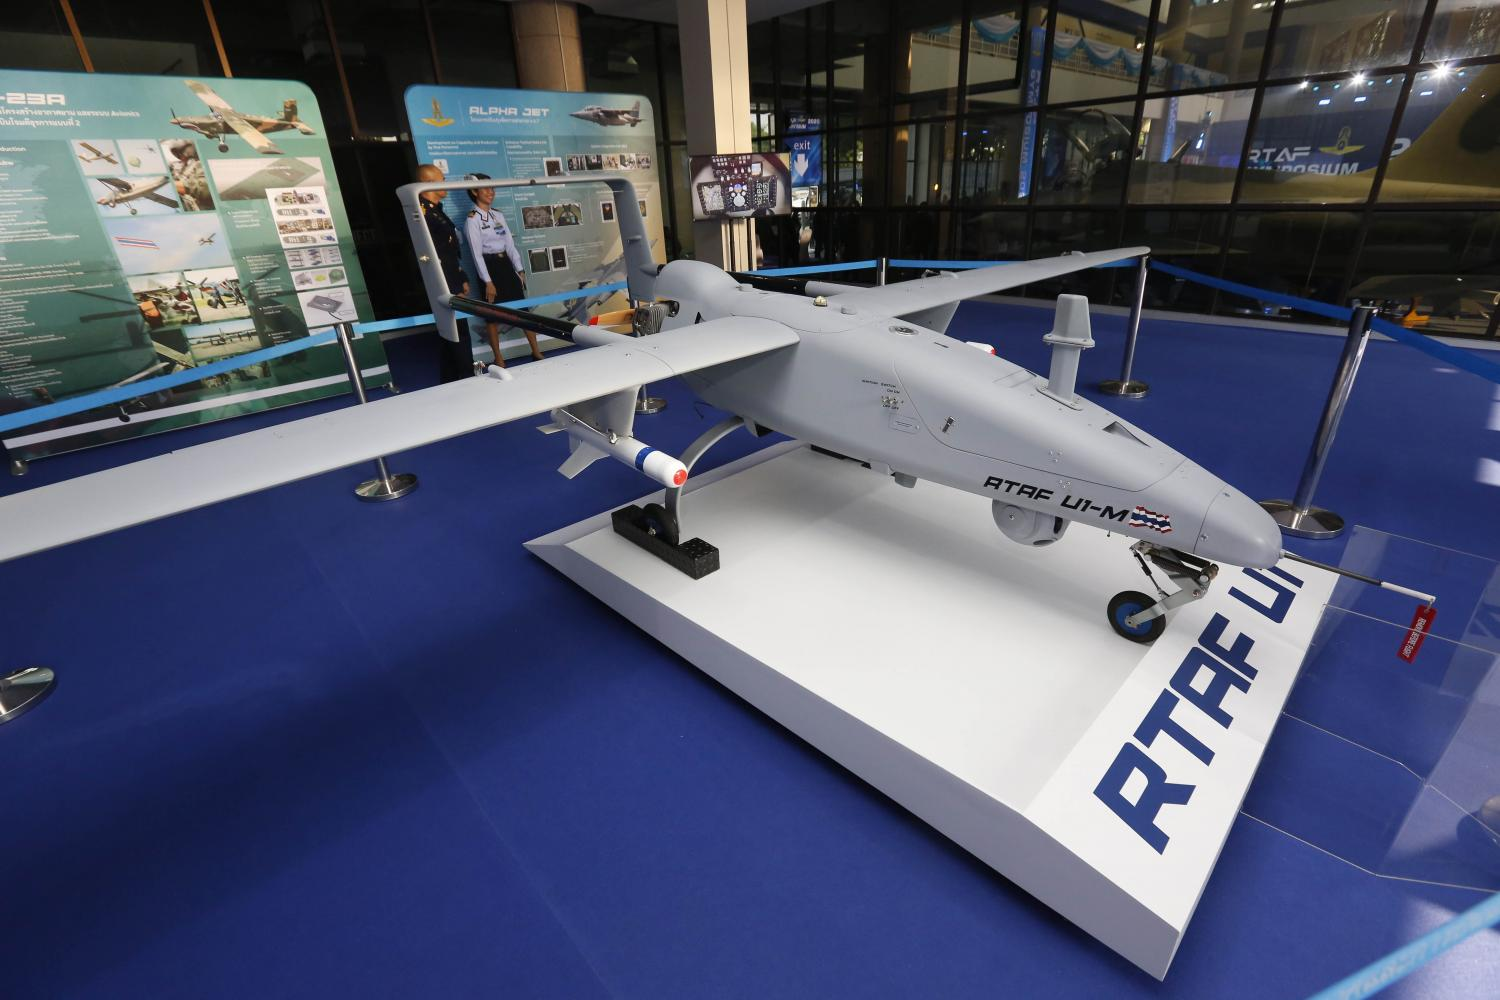 An Unmanned Aerial Vehicle (UAV) is displayed at the 2020 Royal Thai Air Force Symposium on defence technology, held yesterday at the Air Force Museum in Bangkok. Pattarapong Chatpattarasill